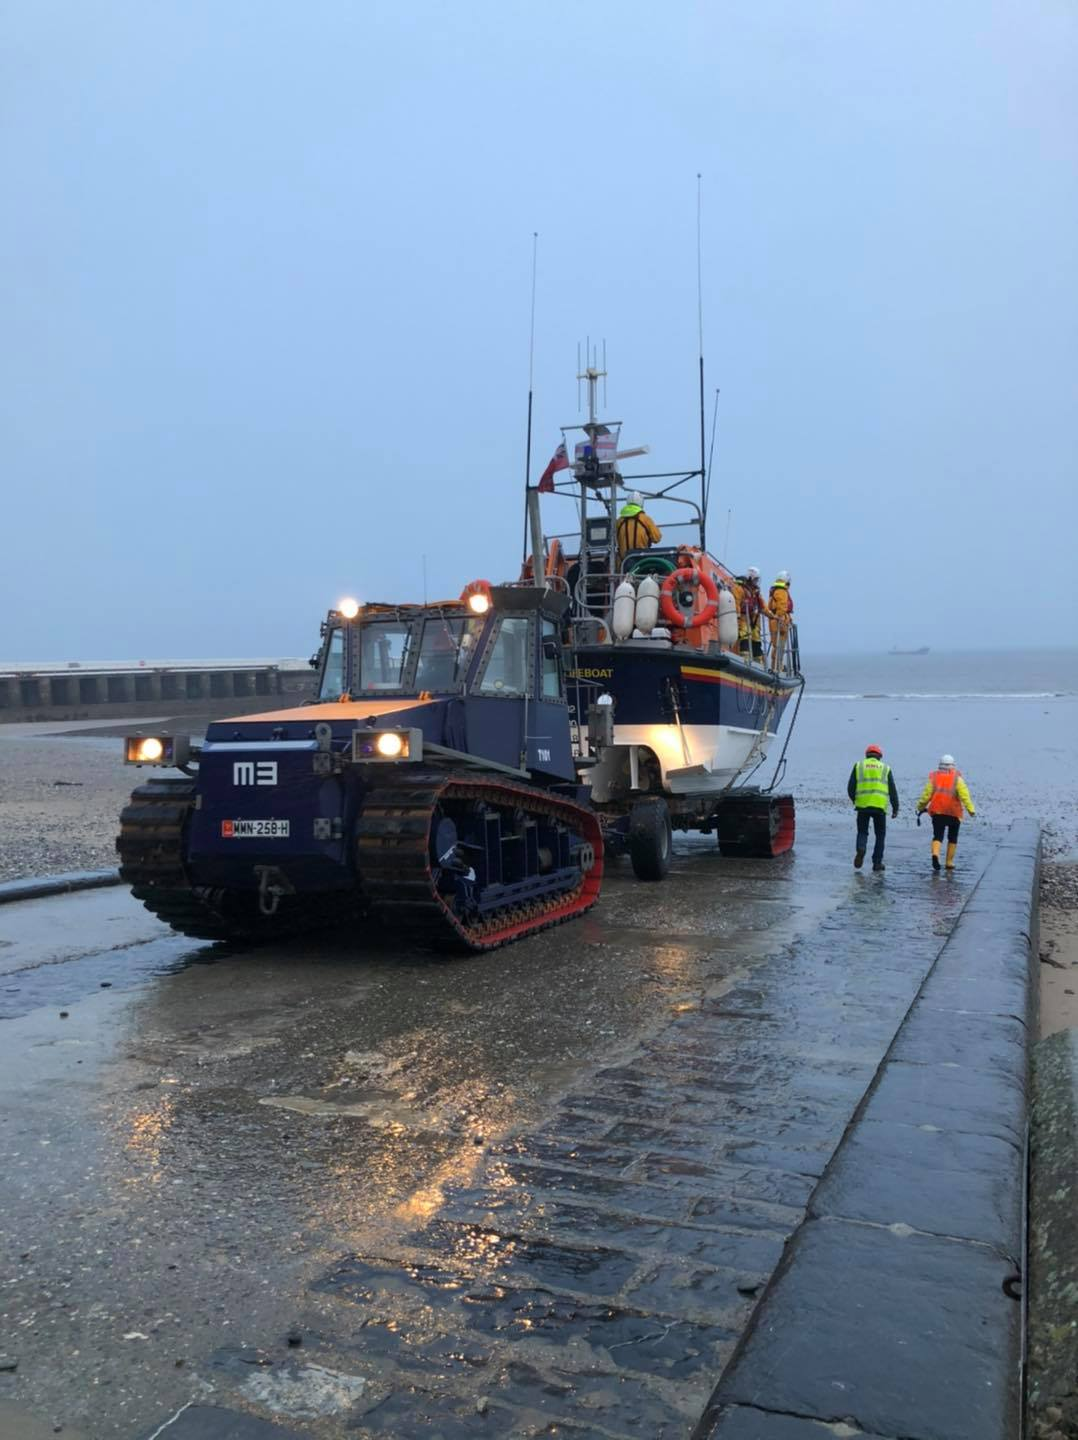 Ramsay RNLI lifeboat Ruby Clery